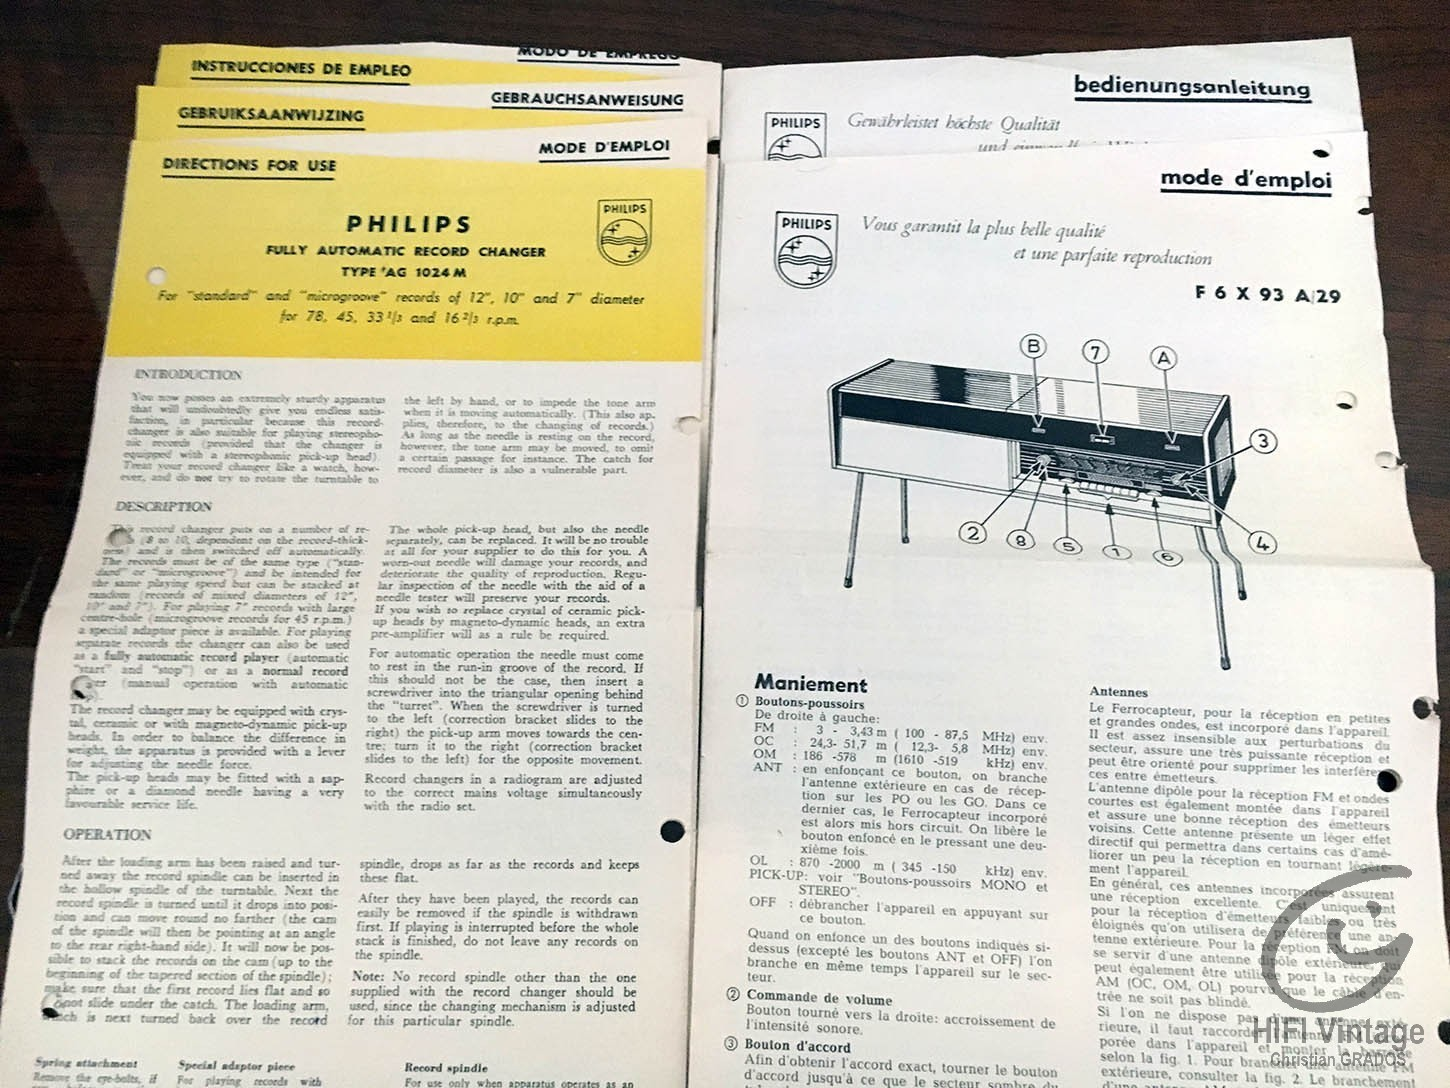 PHILIPS F-6-X93-A29